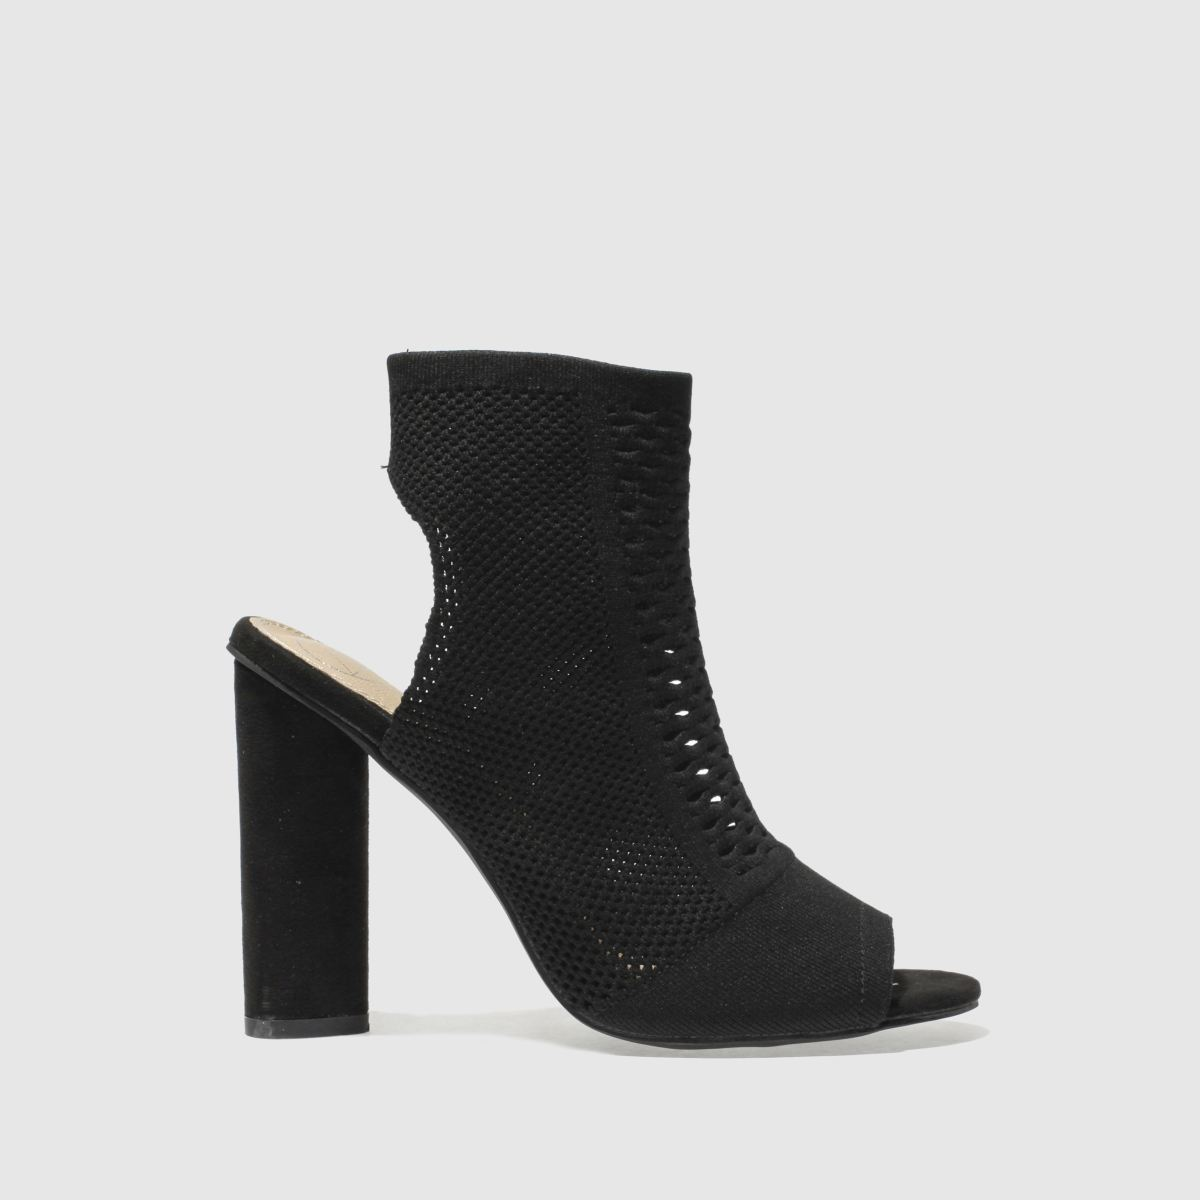 missguided Missguided Black Peep Toe Knitted Boots